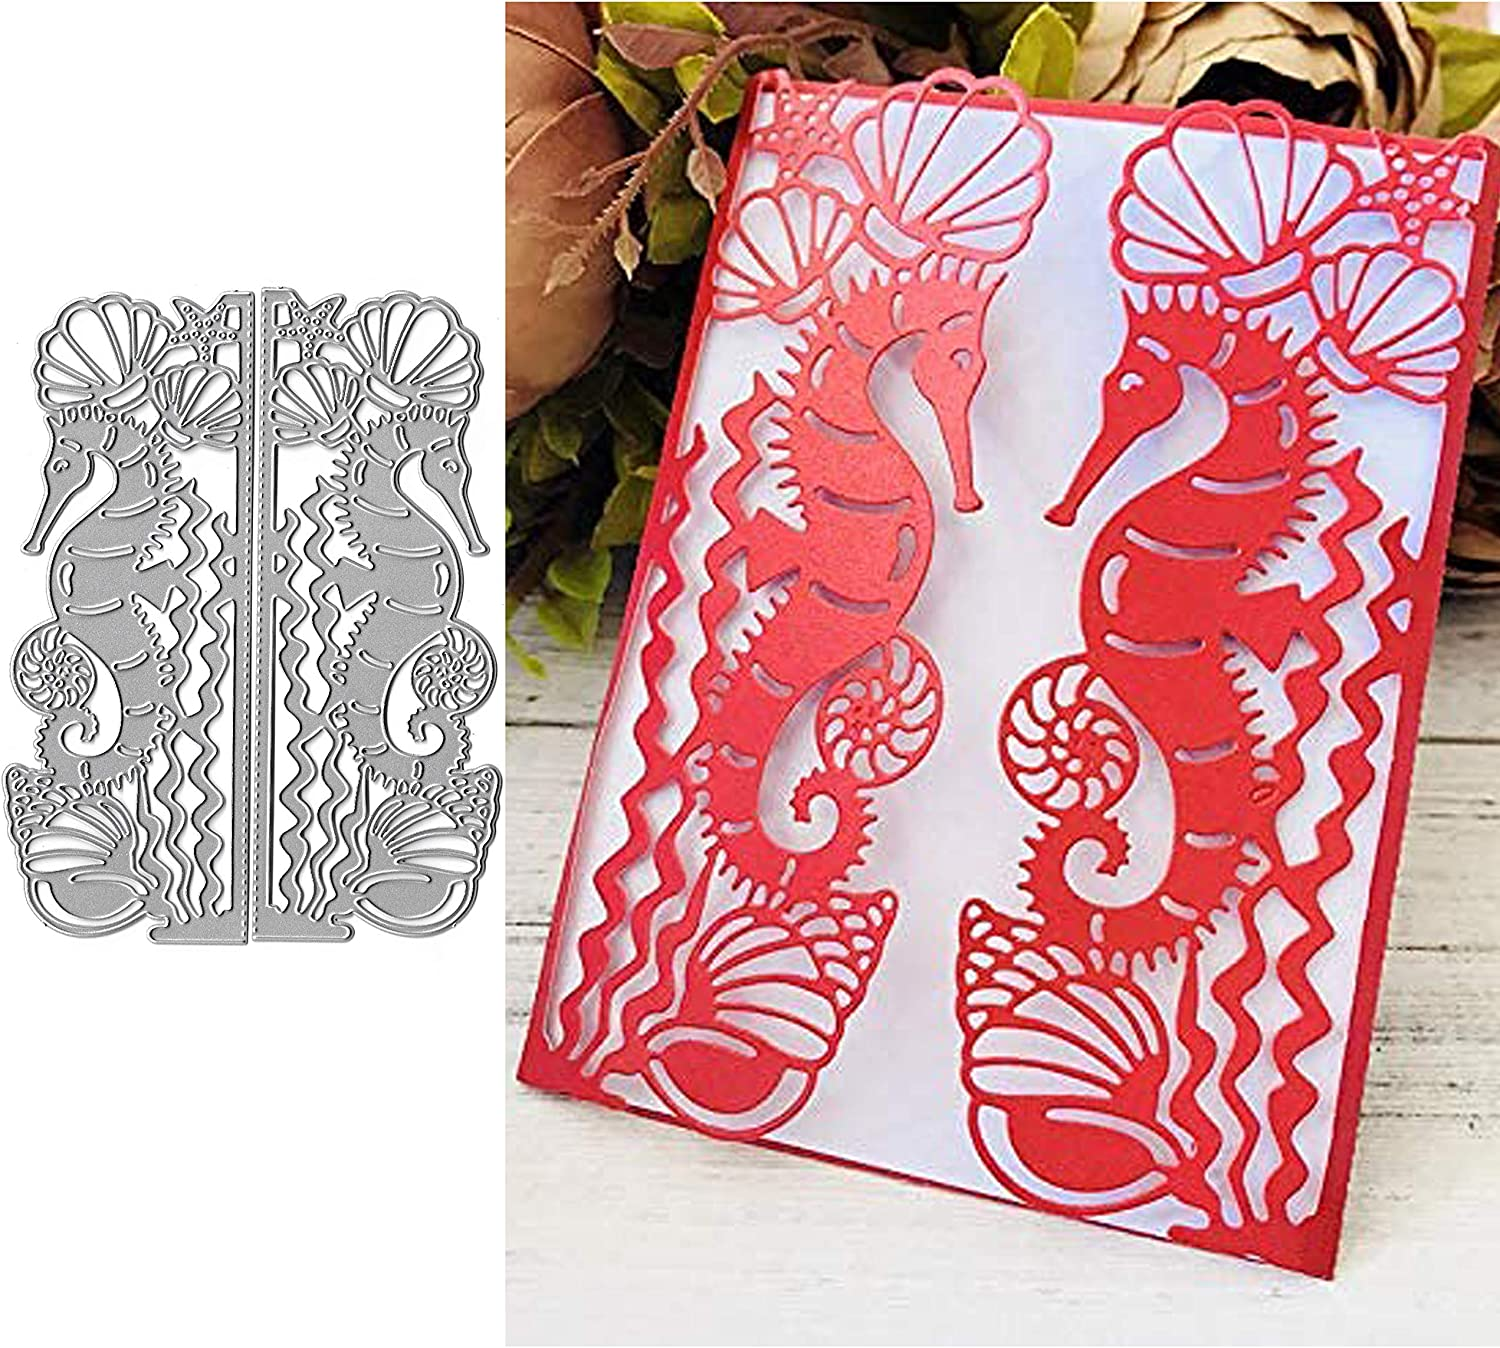 Flower Leaf Metal Die Cuts,Flower Frame Background Christmas Wedding Invitation Cutting Dies Cut DIY Card Making Stencils Scrapbooking Photo Album Paper Embossing